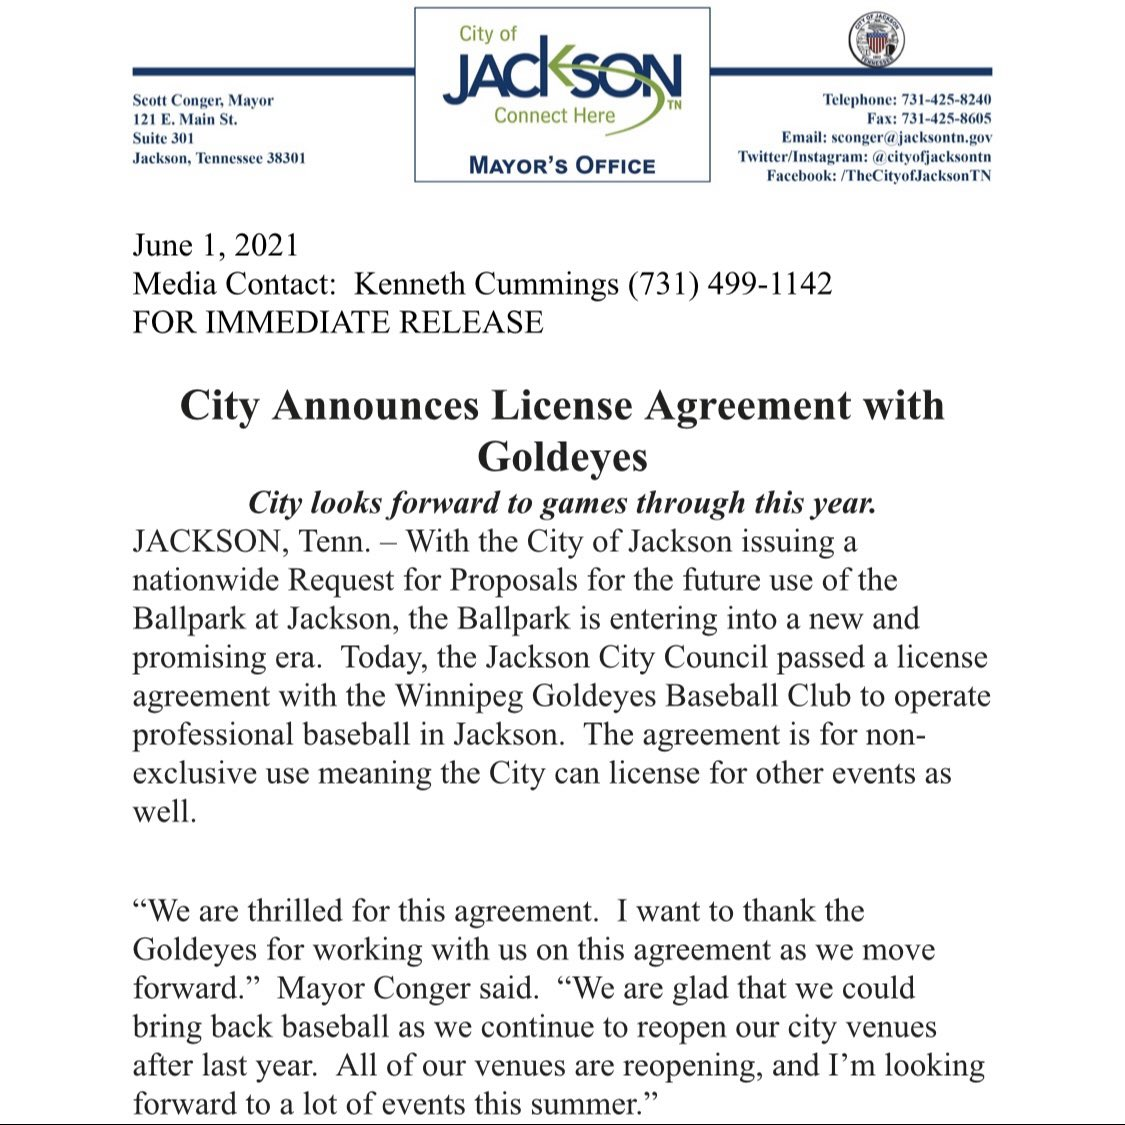 Jackson City Council approves an agreement to bring back professional baseball to Jackson for 2021